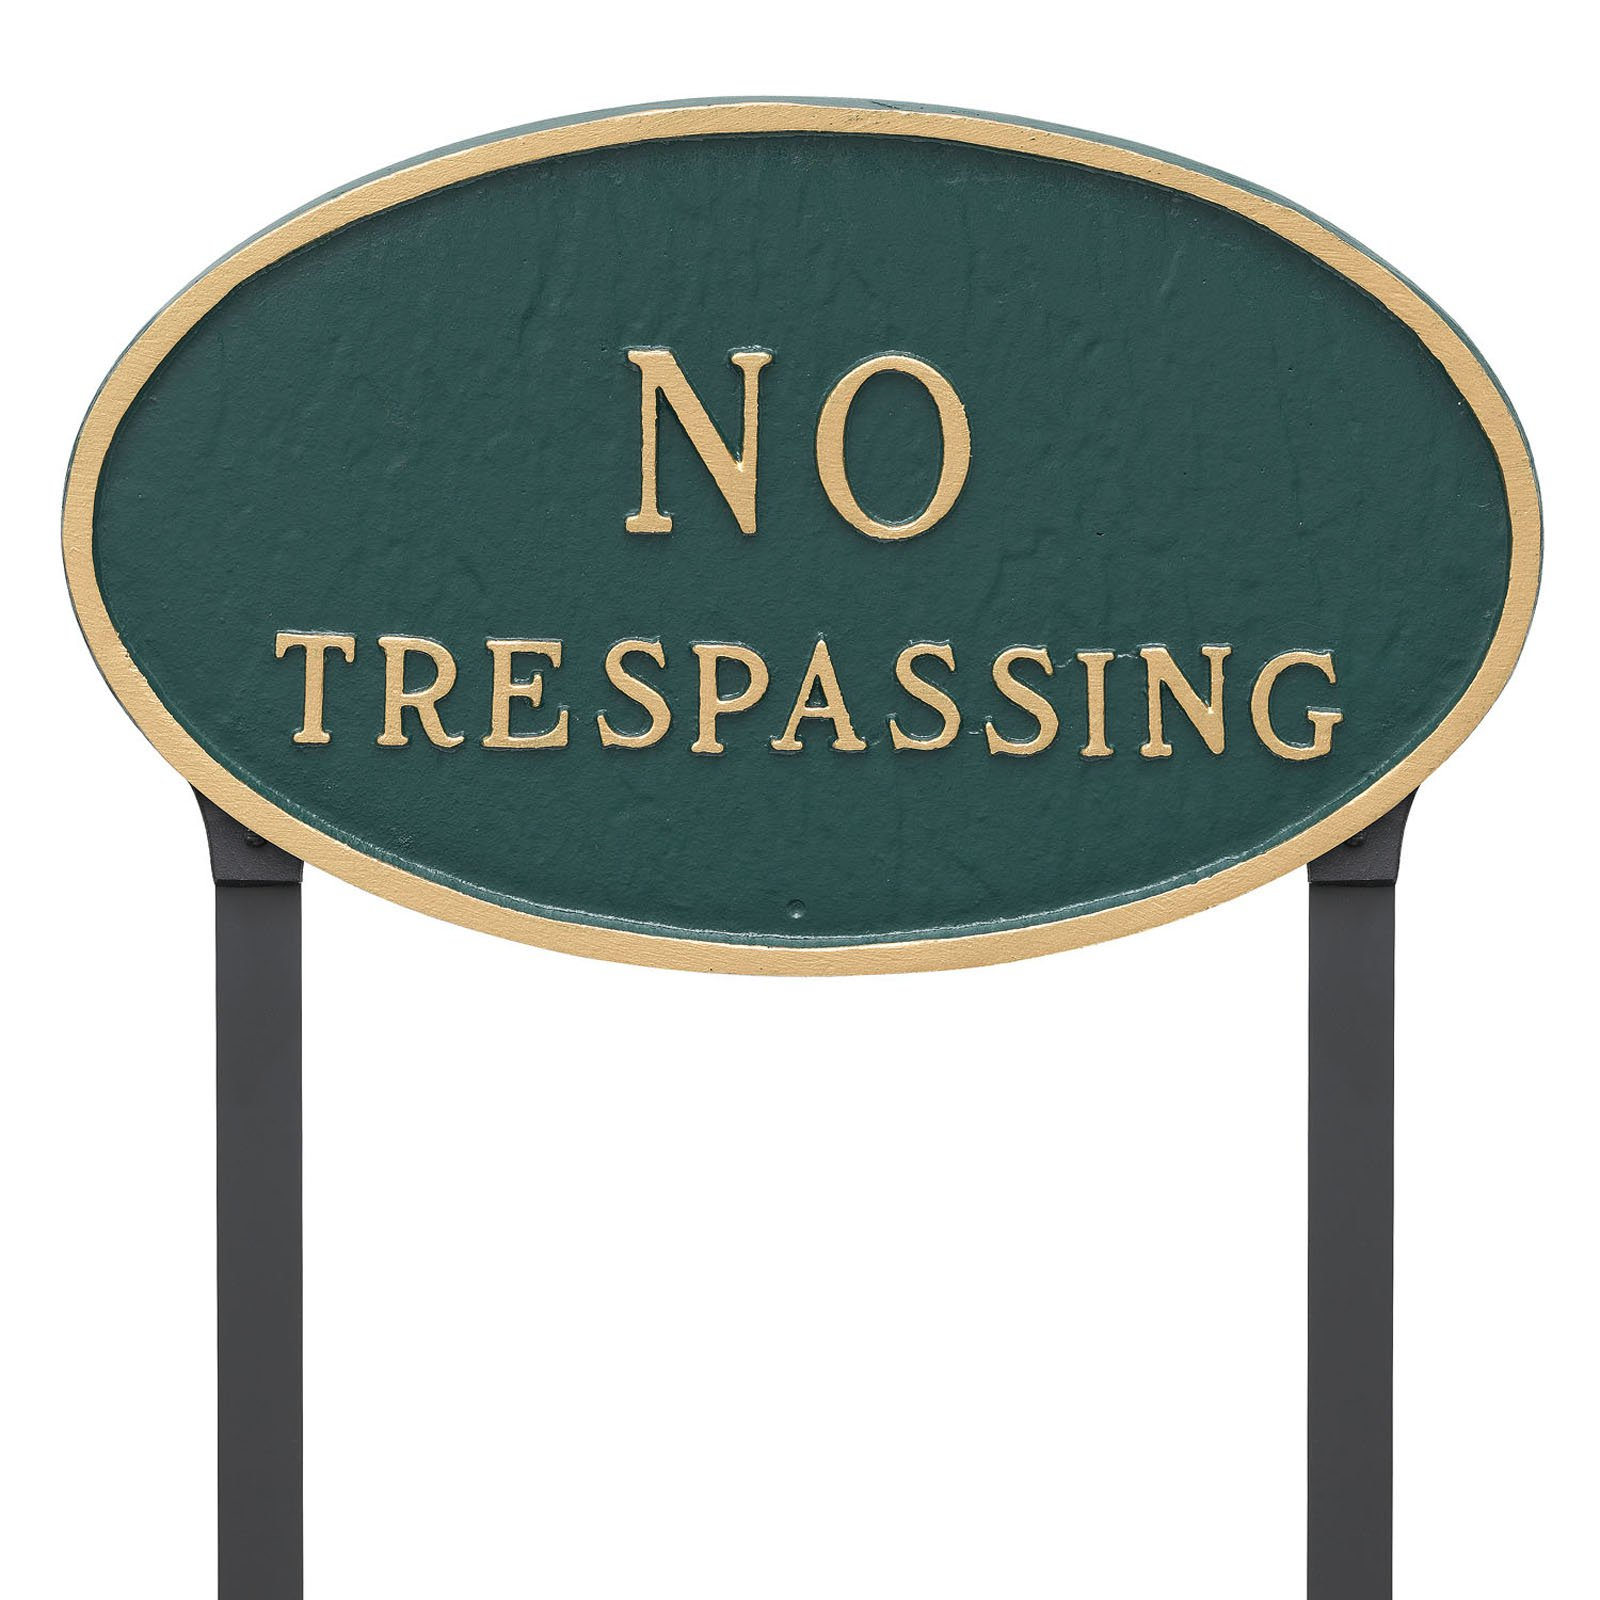 Montague Metal Products No Trespassing Oval Lawn Plaque